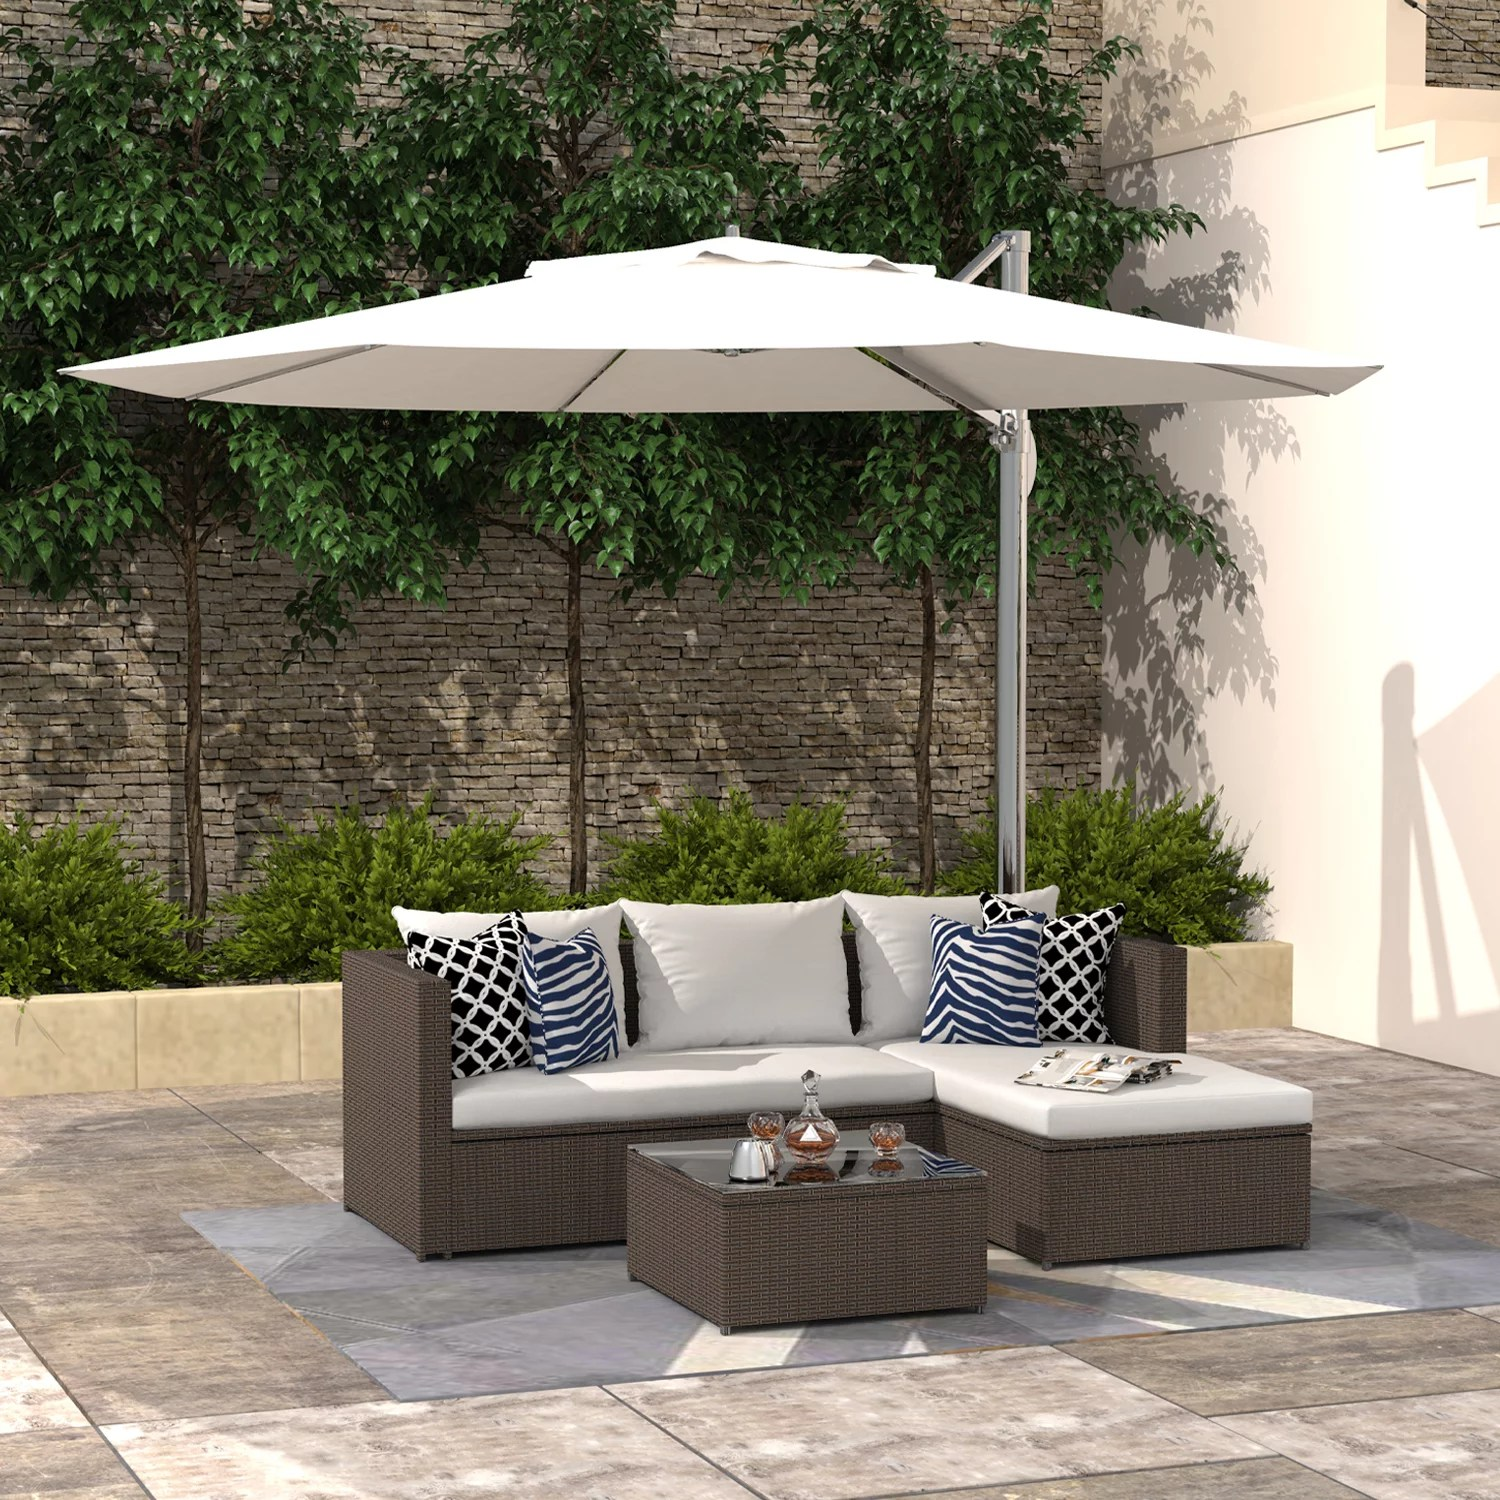 finefind outdoor sectional sofa patio furniture set all weather wicker set for backyard garden balcony or small space walmart com